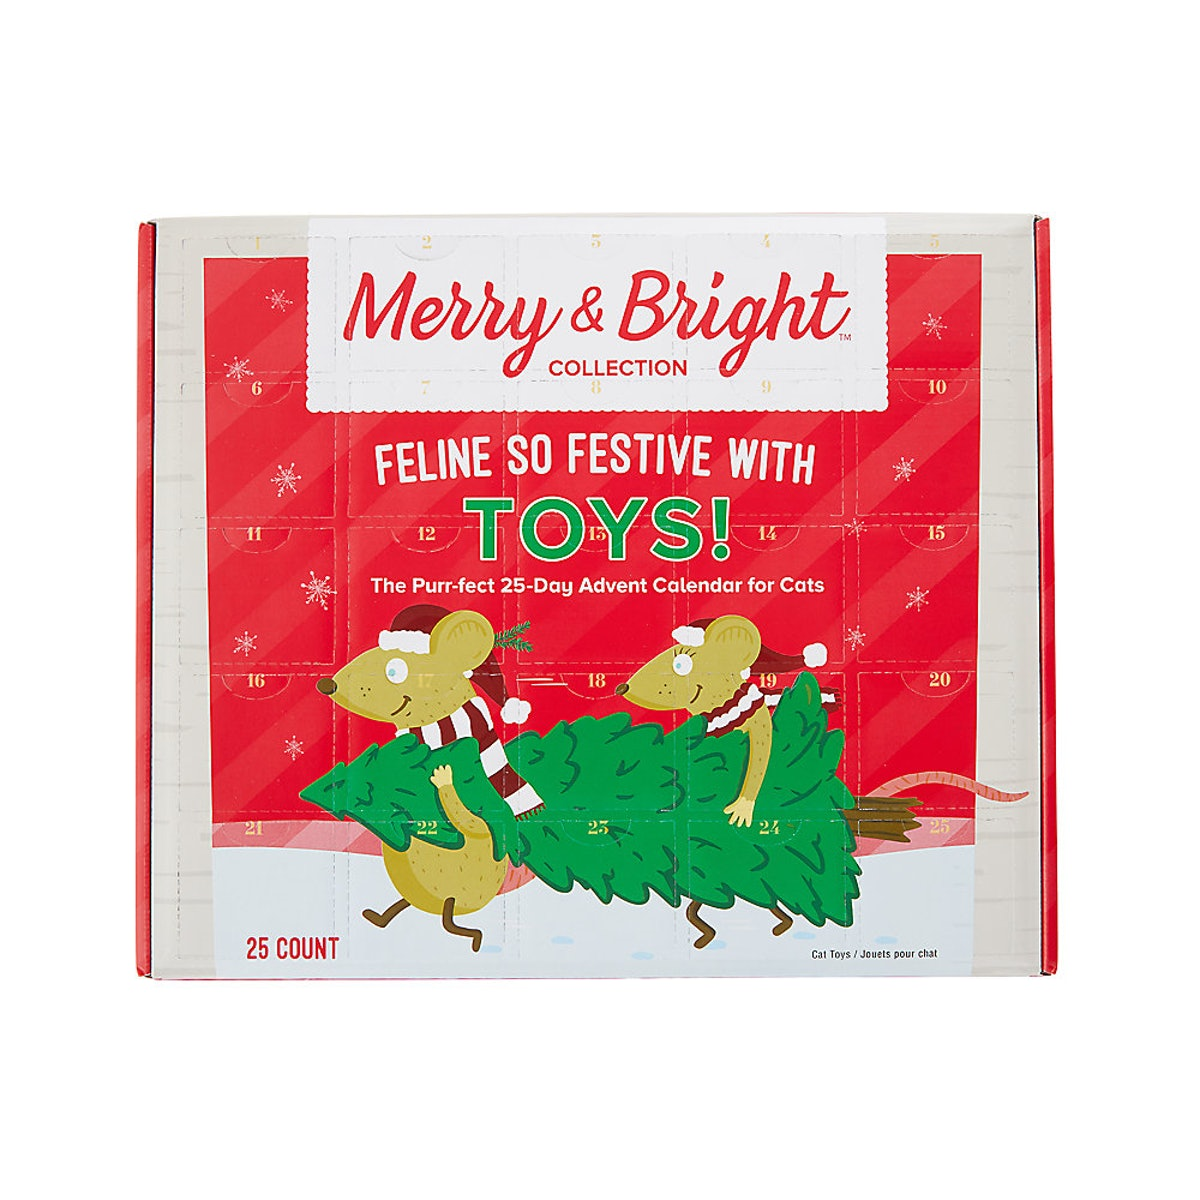 Merry & Bright™ Holiday 25-Day Advent Calendar for Cats